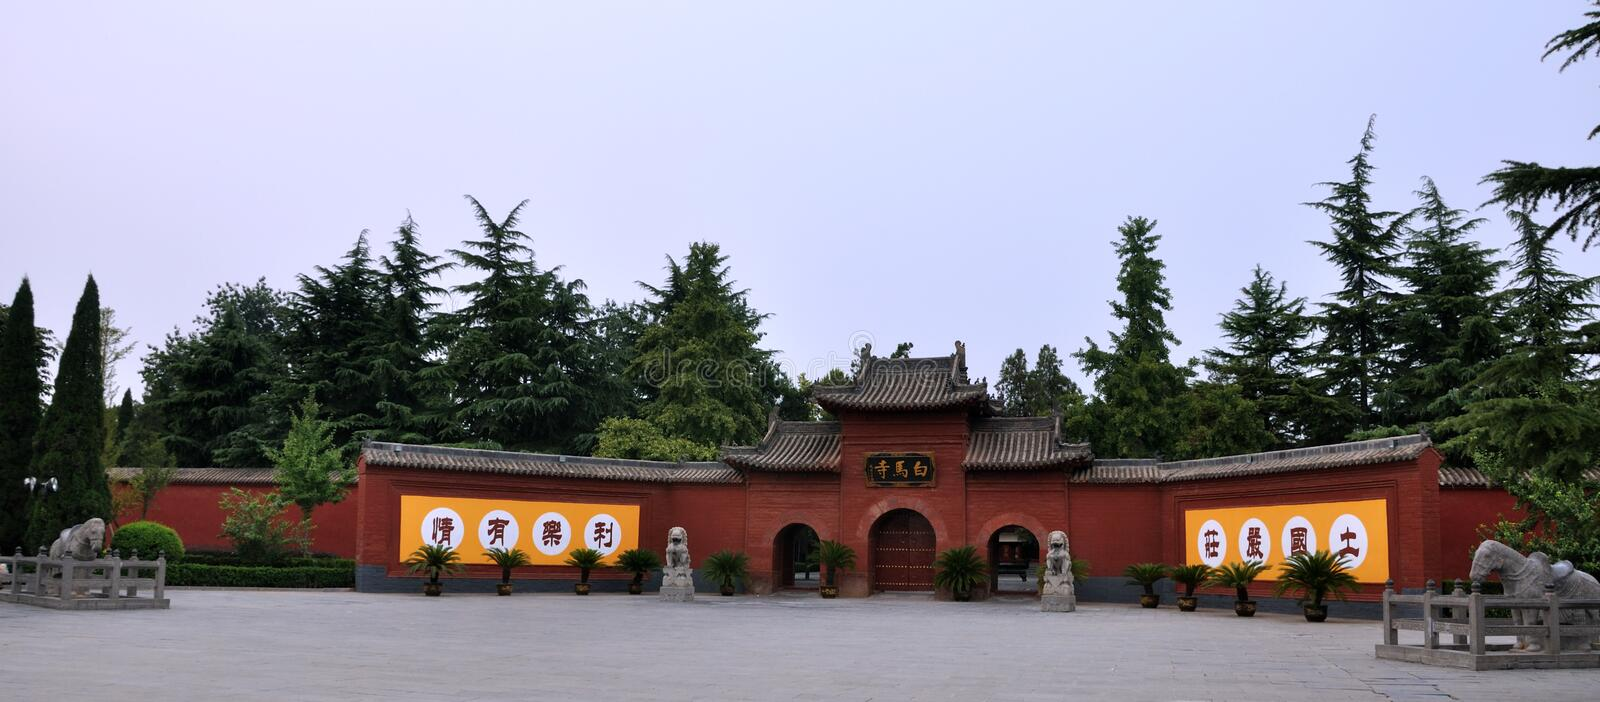 White Horse Temple, North Of China Royalty Free Stock Photography